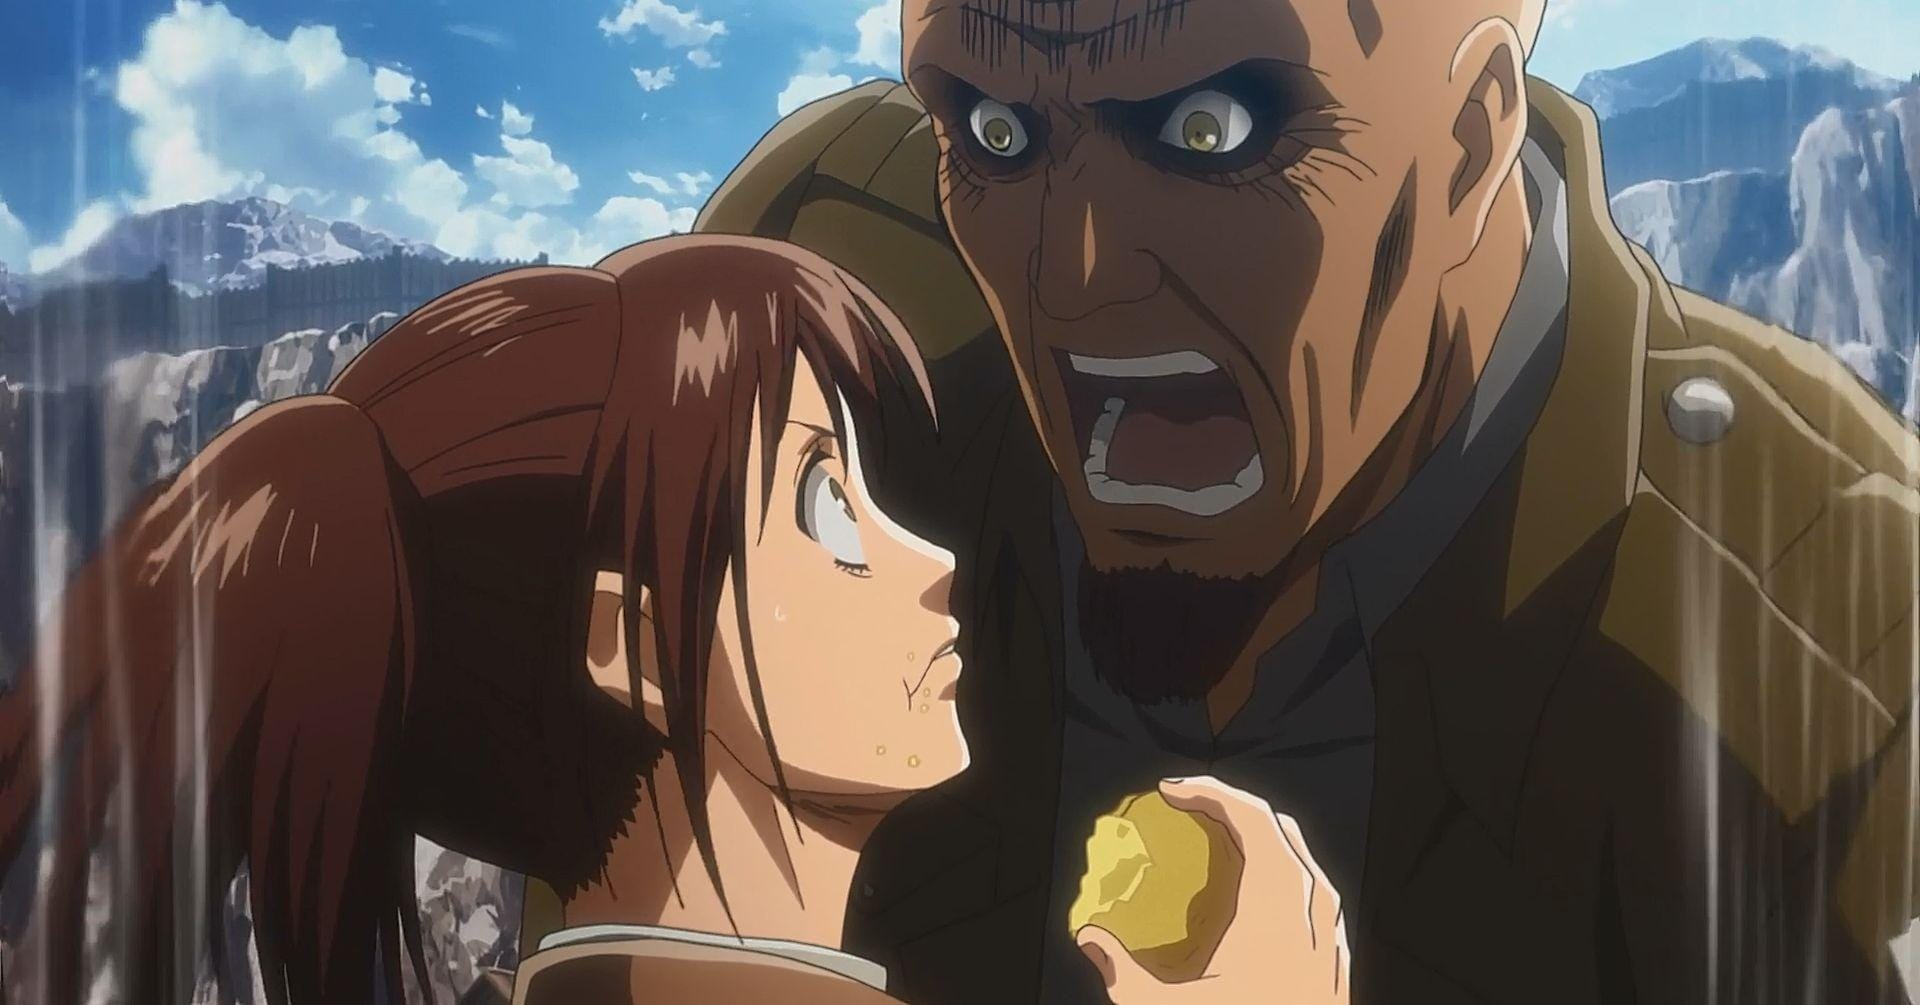 Funny Attack on Titan Moments